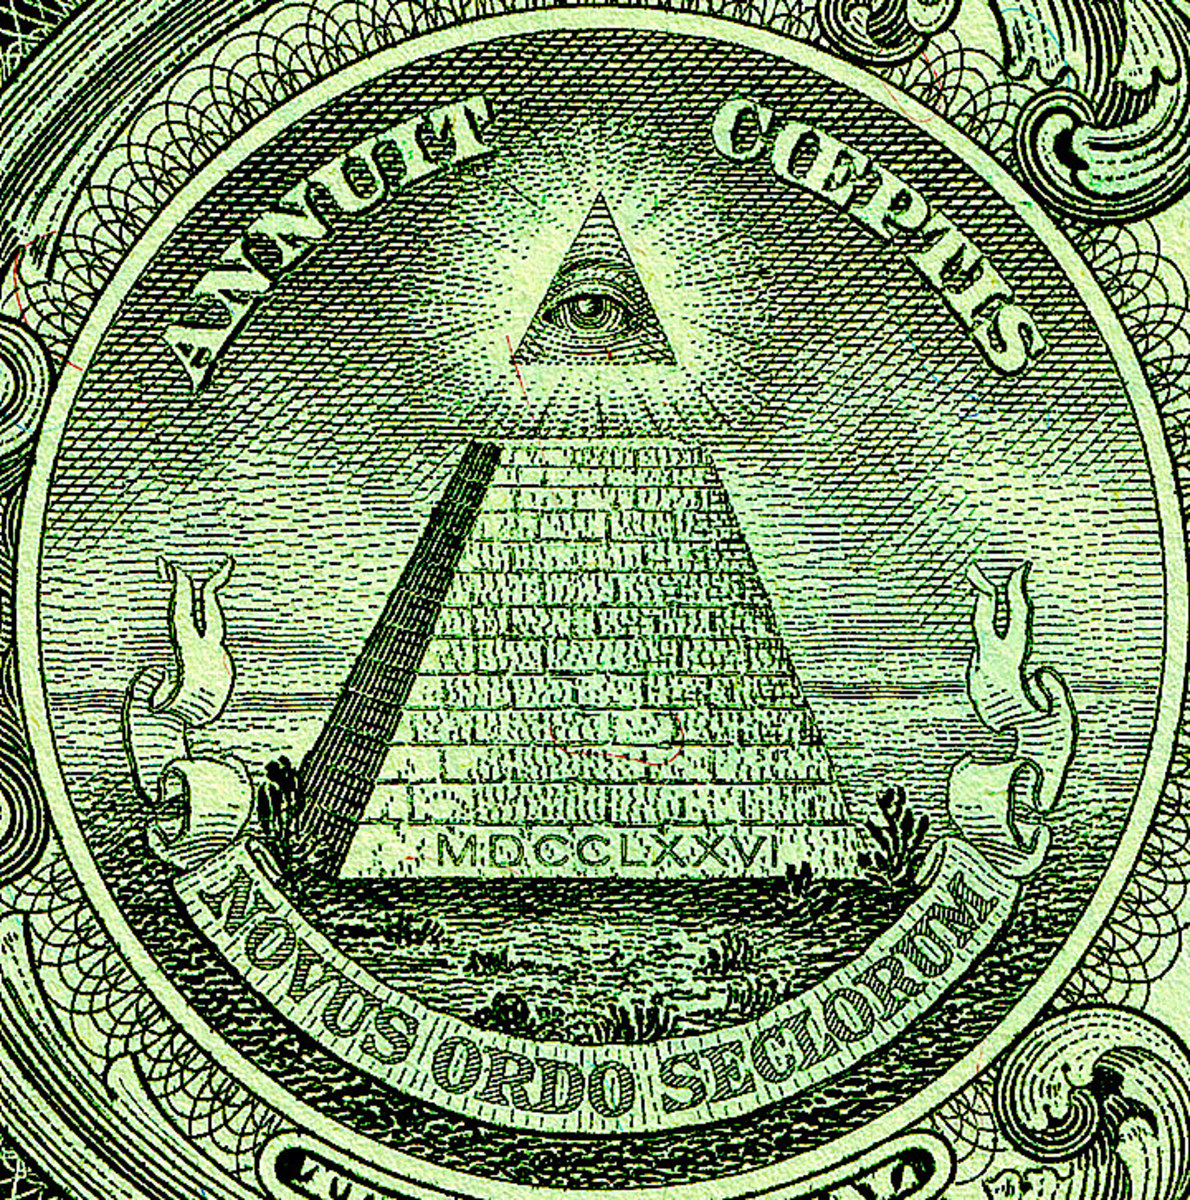 The Eye of Providence, or the all-seeing eye of God, seen here on the $1 bill, has been taken by some to be evidence of a conspiracy involving the founders of the United States. (Photo: Wikimedia Commons)